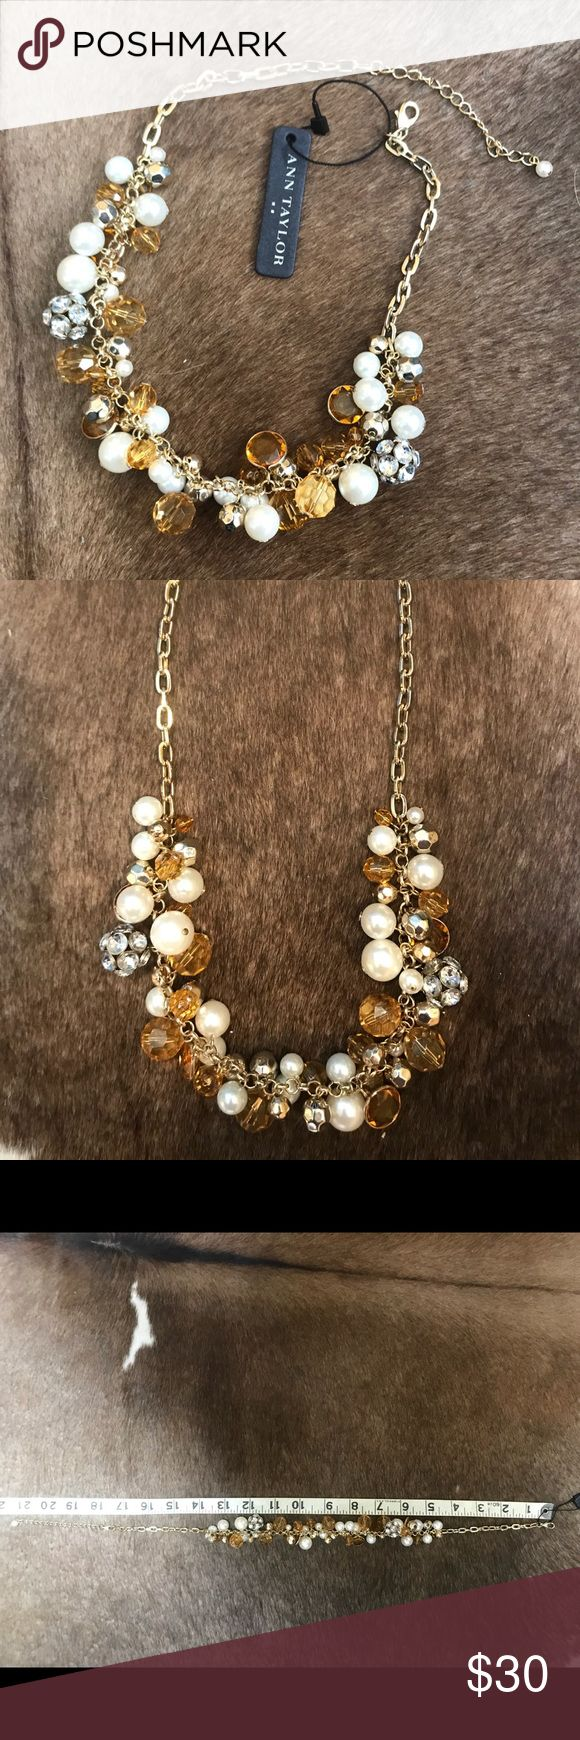 "NWT Sparkling Ann Taylor Statement Necklace Sparkling gold tone statement necklace with amber crystals, gold beads, crystal baubles and faux pearls. 21"" in length and adjustable with lobster claw catch. NWT Super eye-catching! Ann Taylor Jewelry Necklaces"